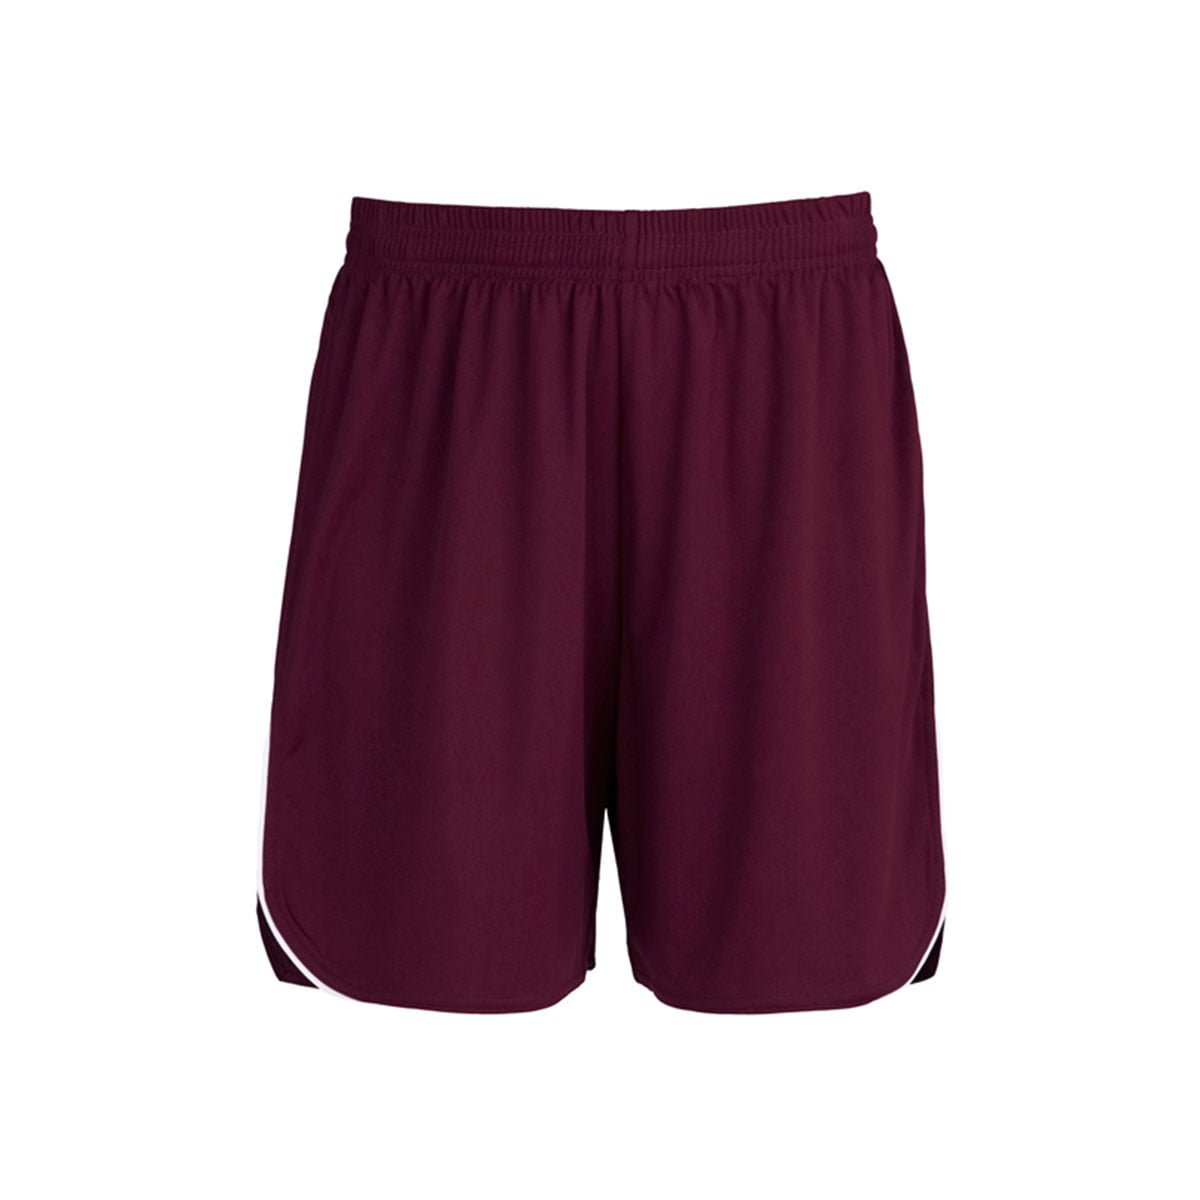 Kids Sonic Shorts-Maroon / White